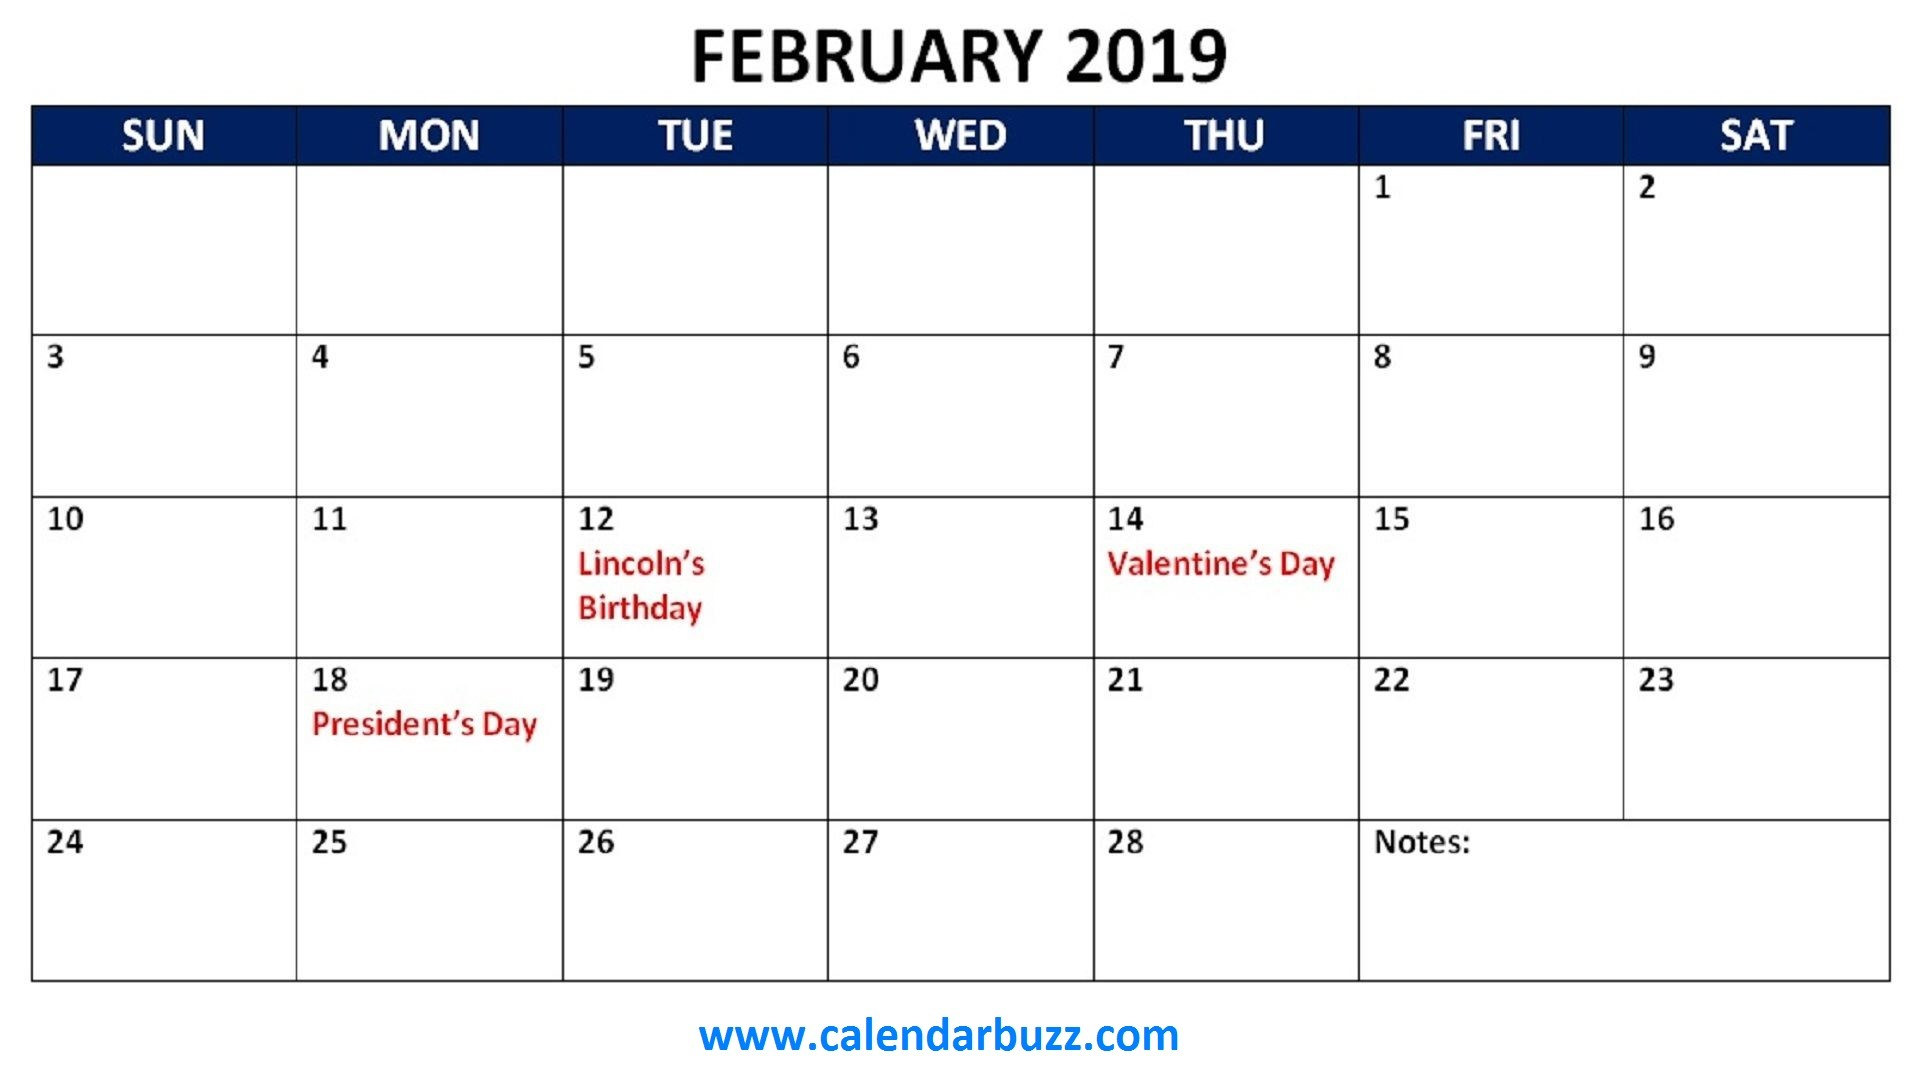 March Calendar Blank 2019 Mejores Y Más Novedosos February 2019 Calendar with Holidays Printable Usa Uk Canada Nz Sa Of March Calendar Blank 2019 Más Caliente 2019 March for Life Info